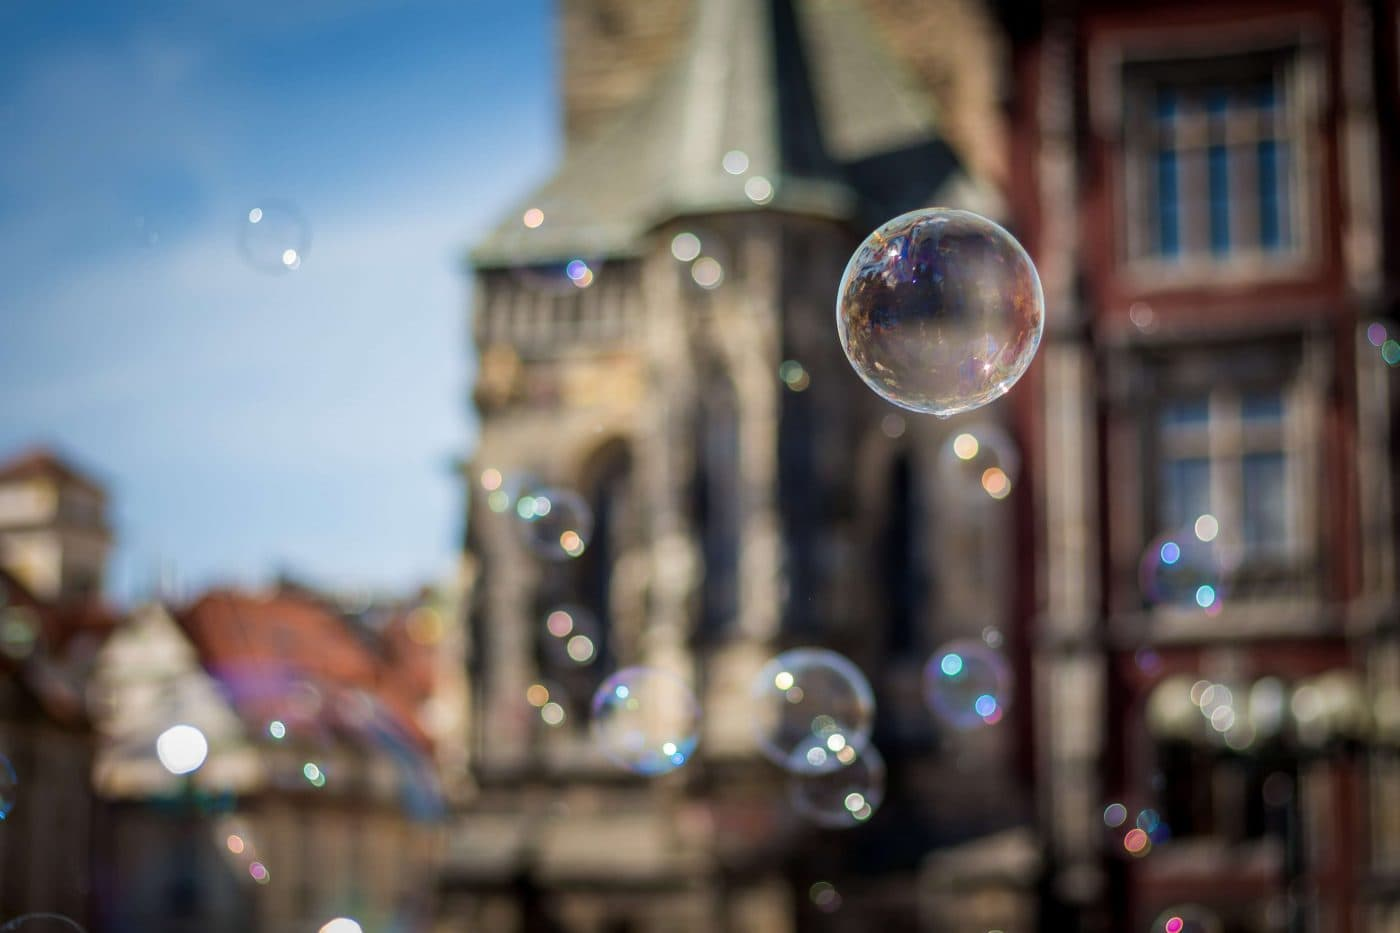 Postcard from the Czech Republic: Bubbles iN Prague